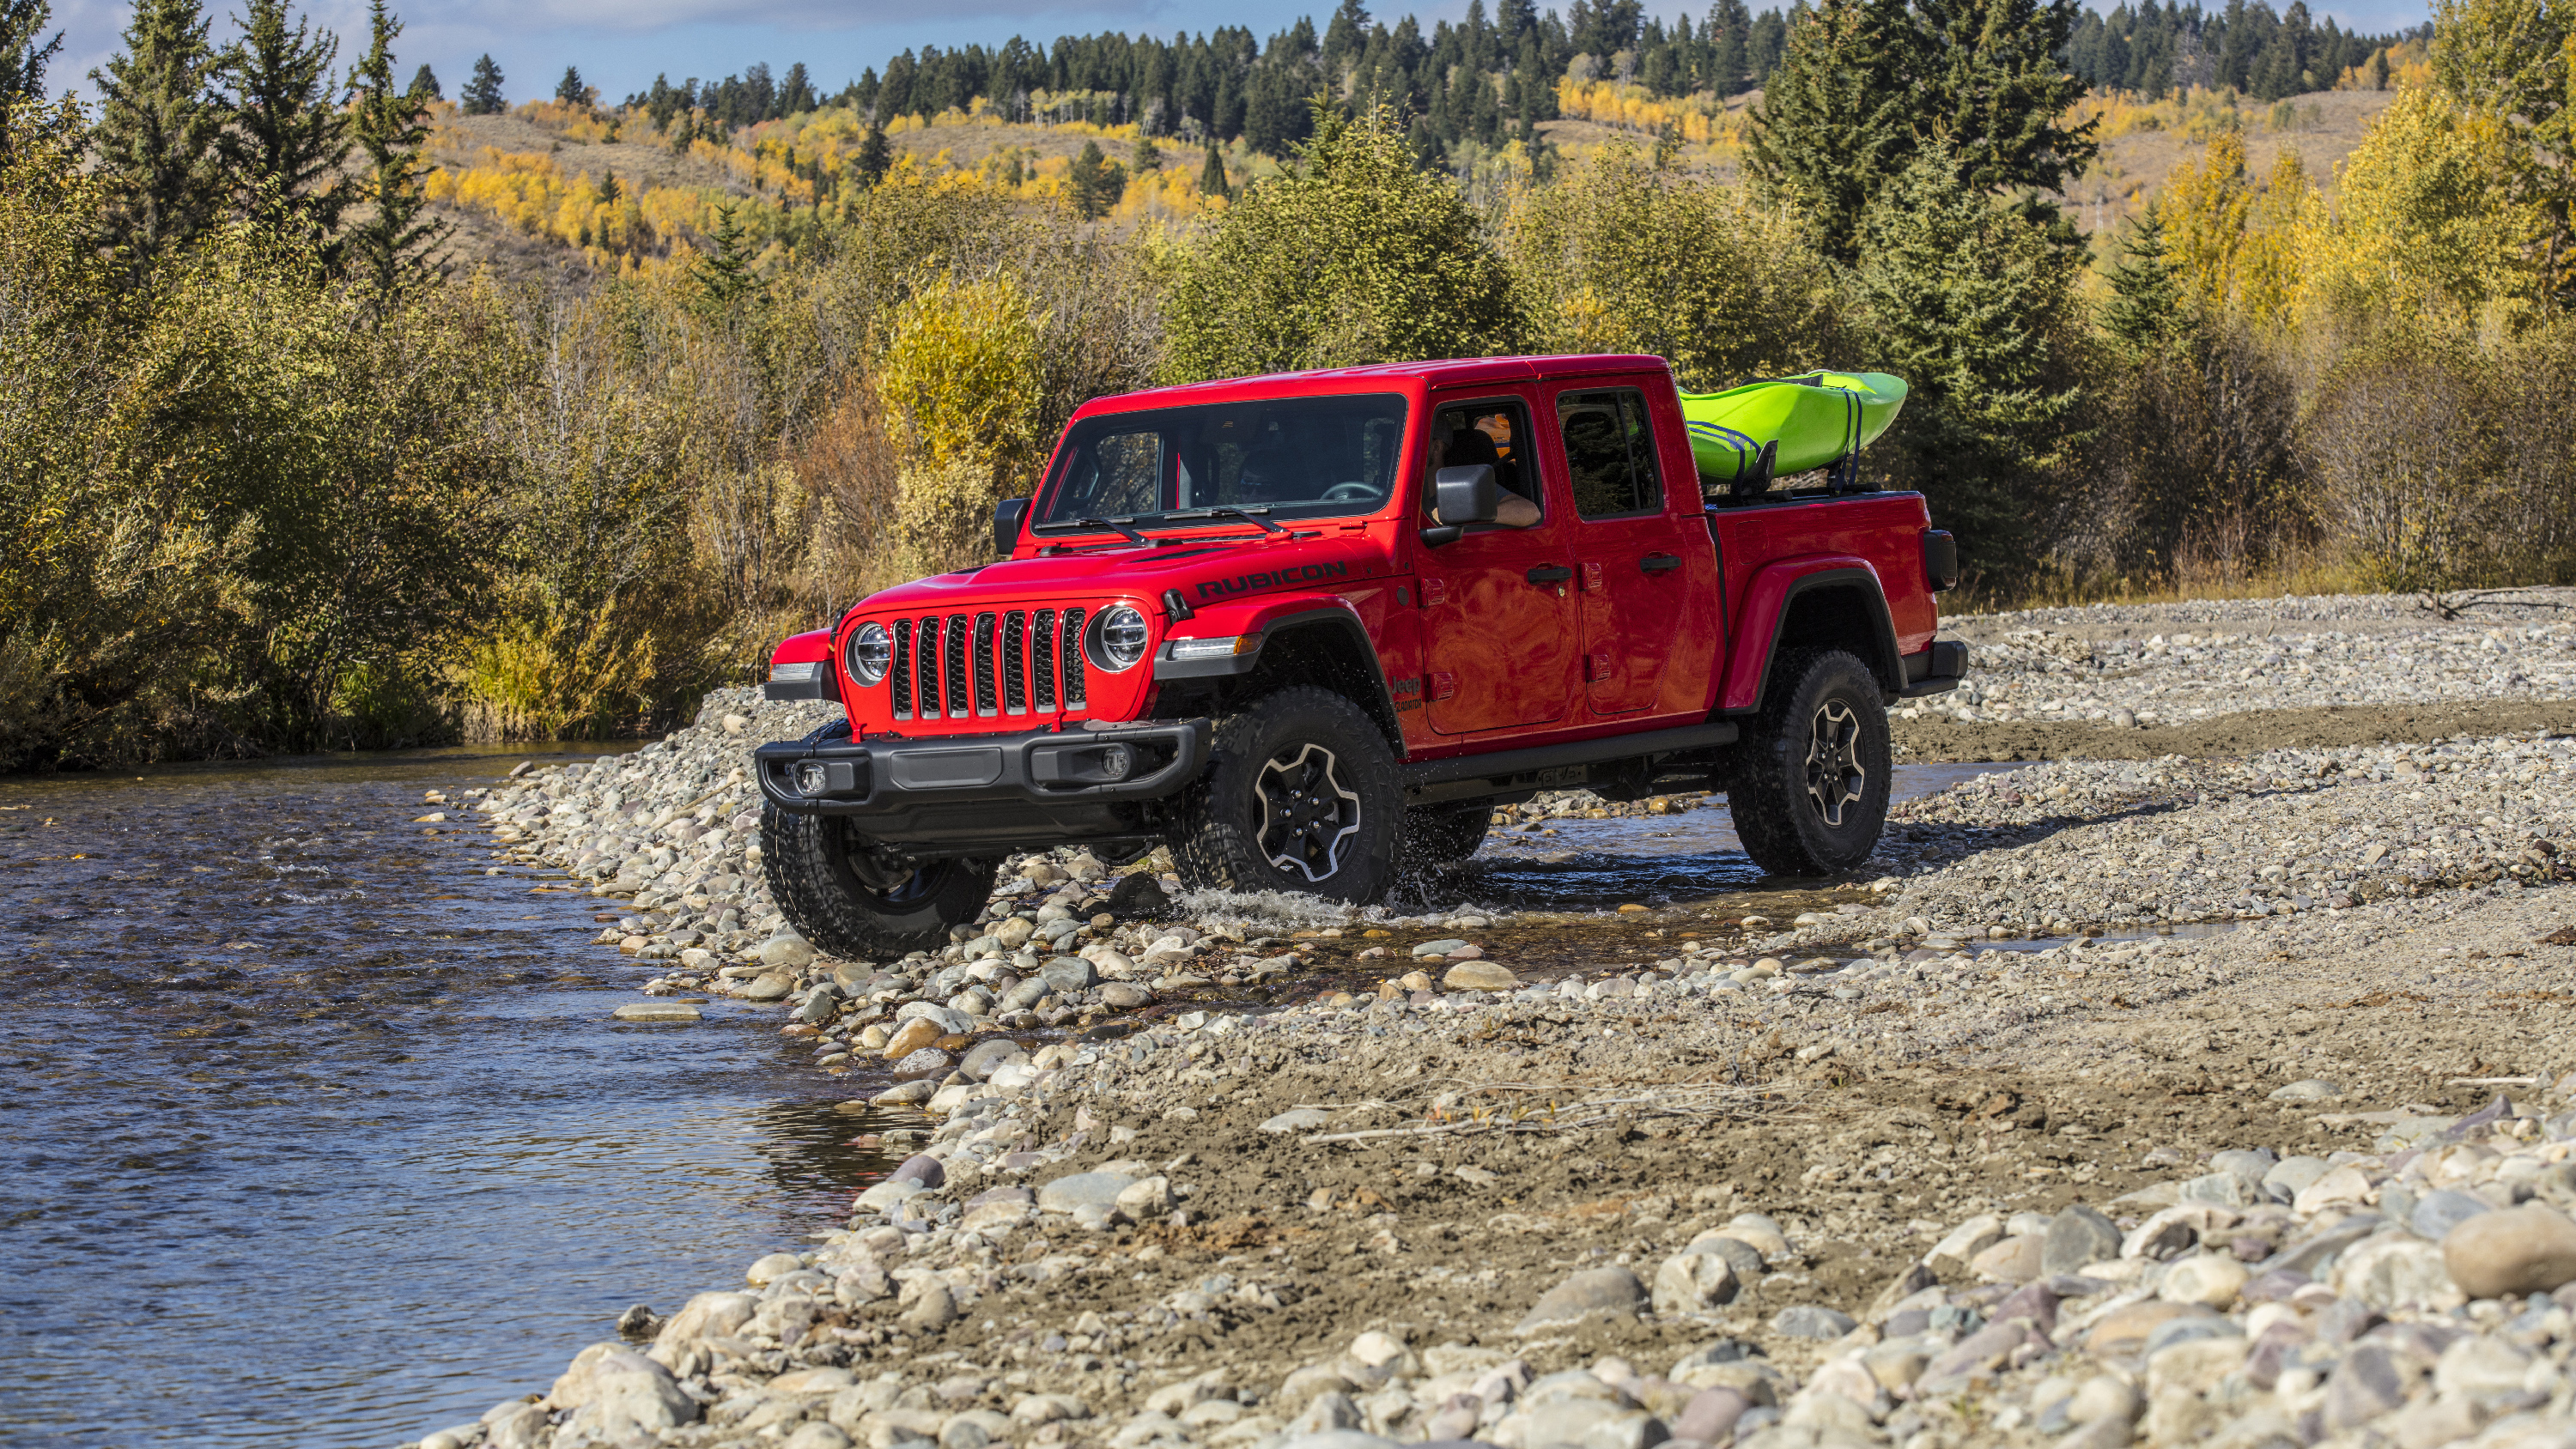 2020 Jeep Gladiator Rubicon 2 Wallpaper HD Car Wallpapers ID 3000x1688